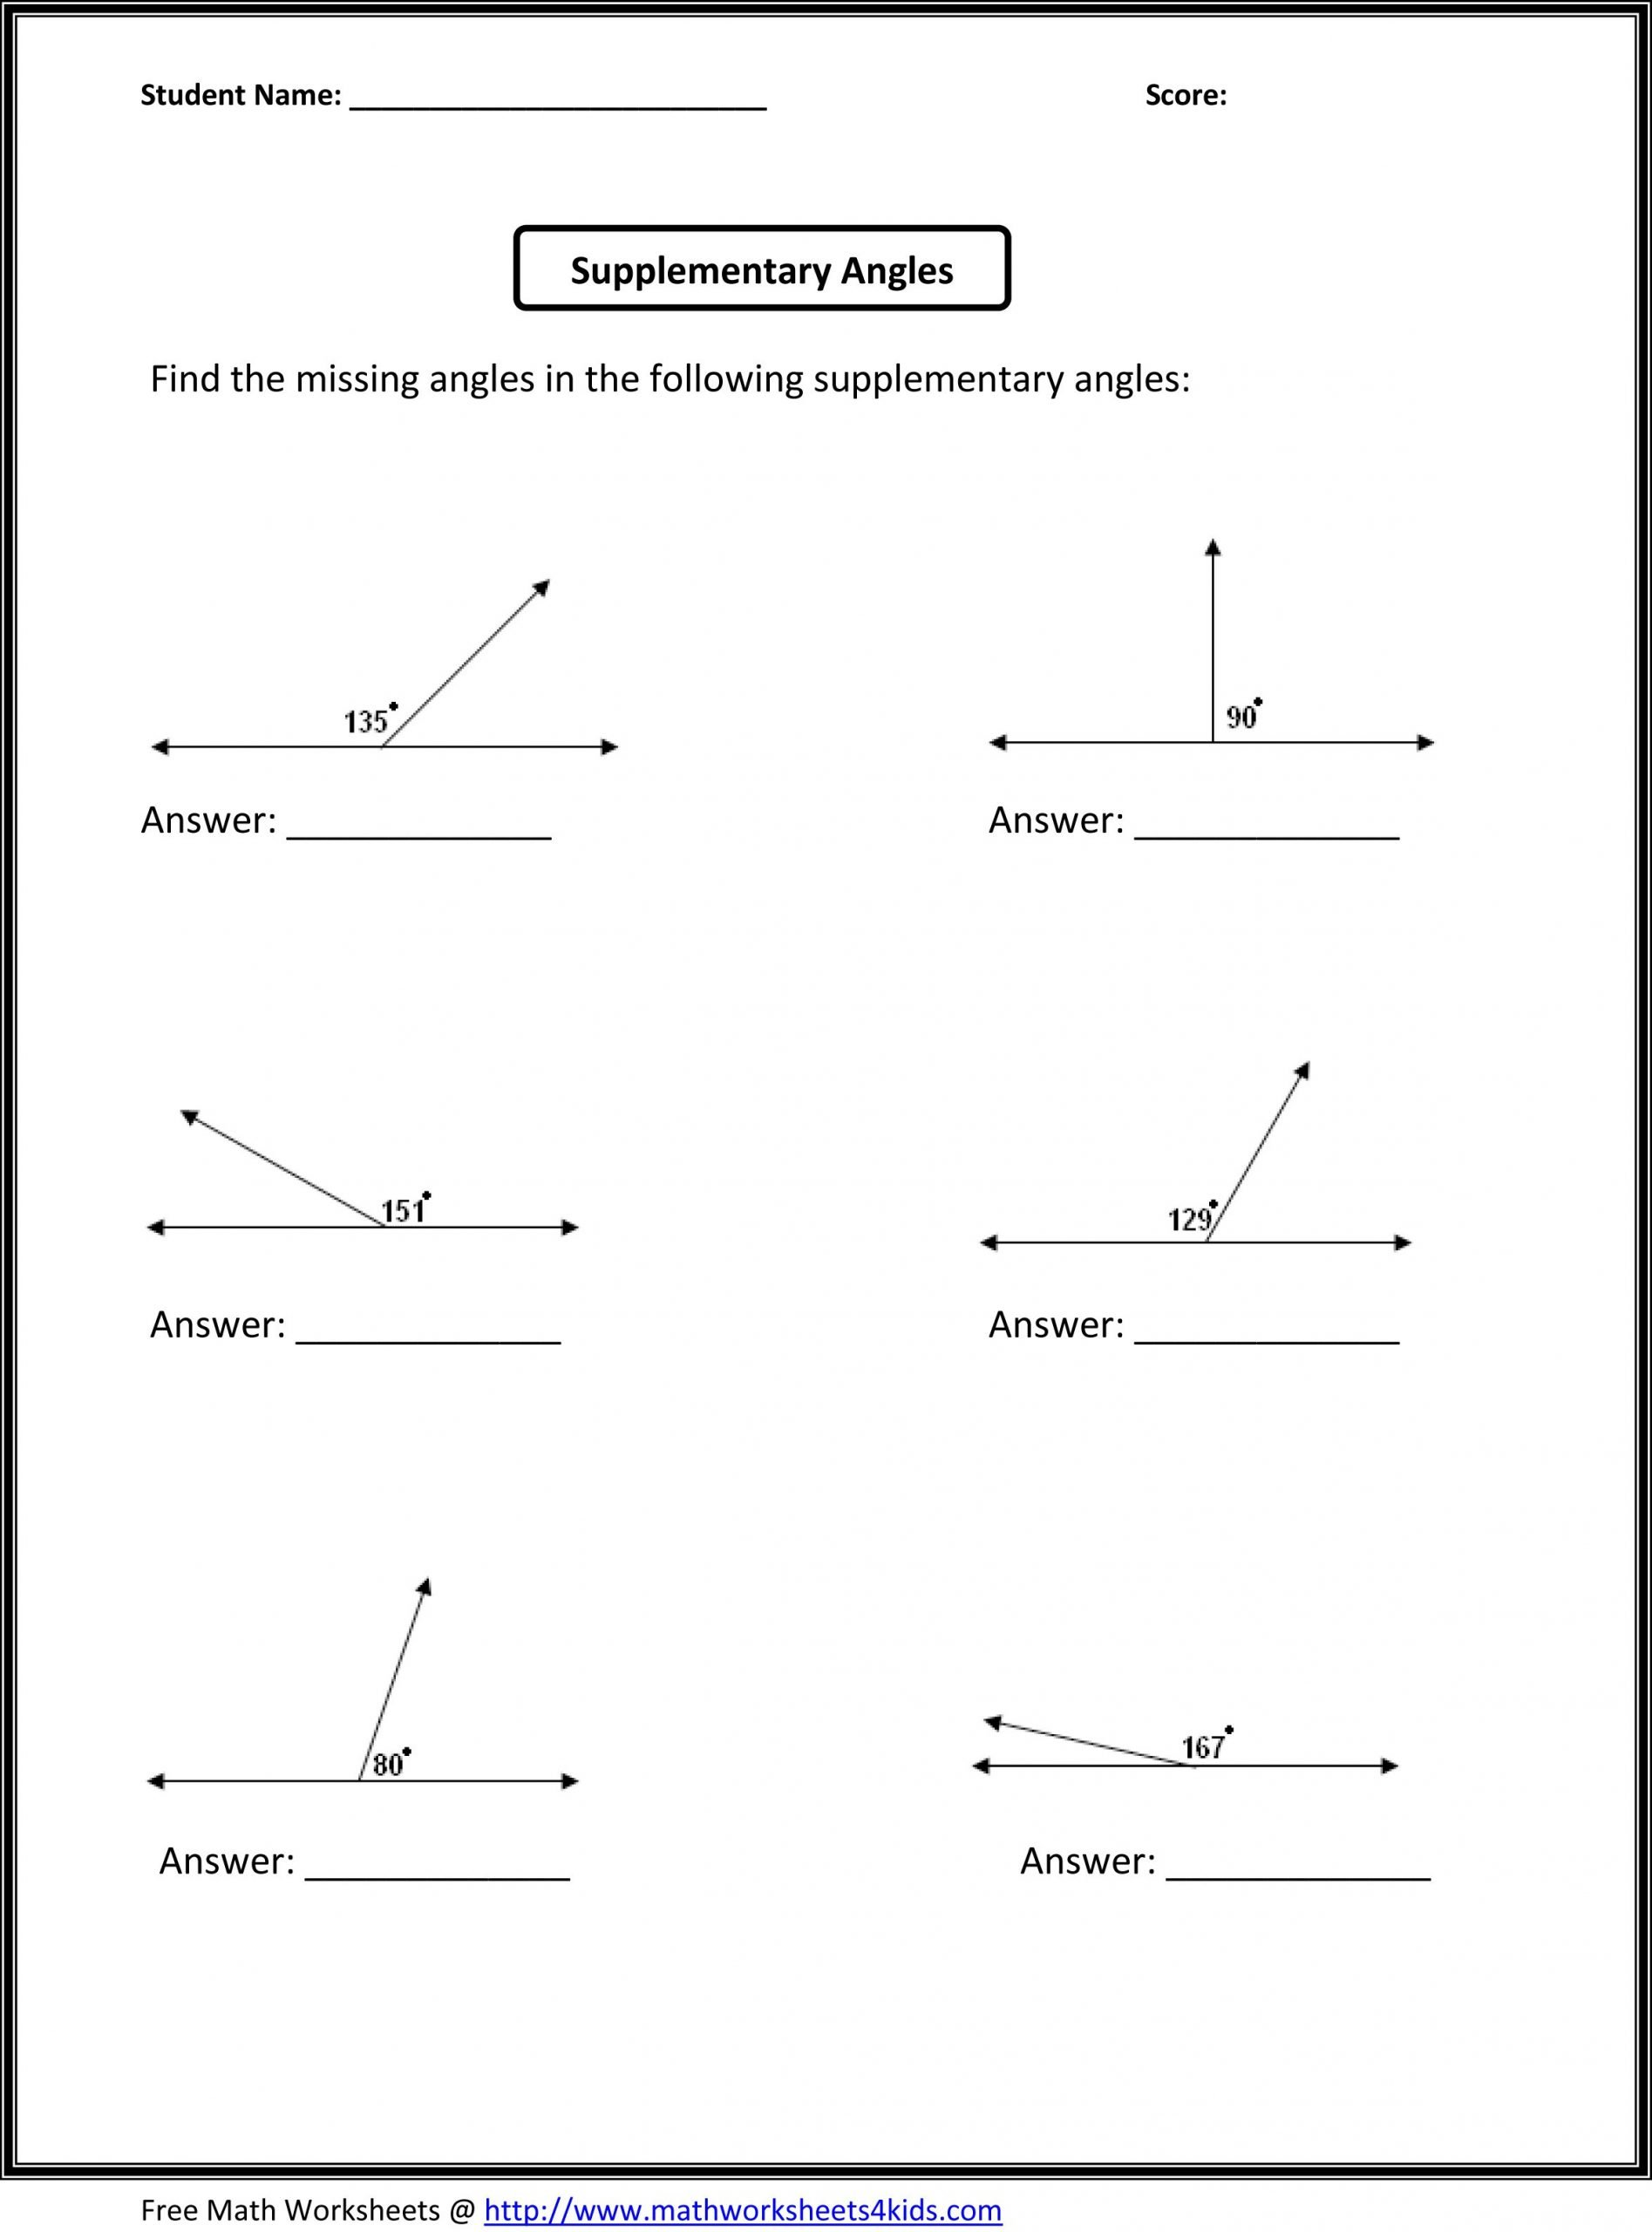 6th grade math worksheets angles